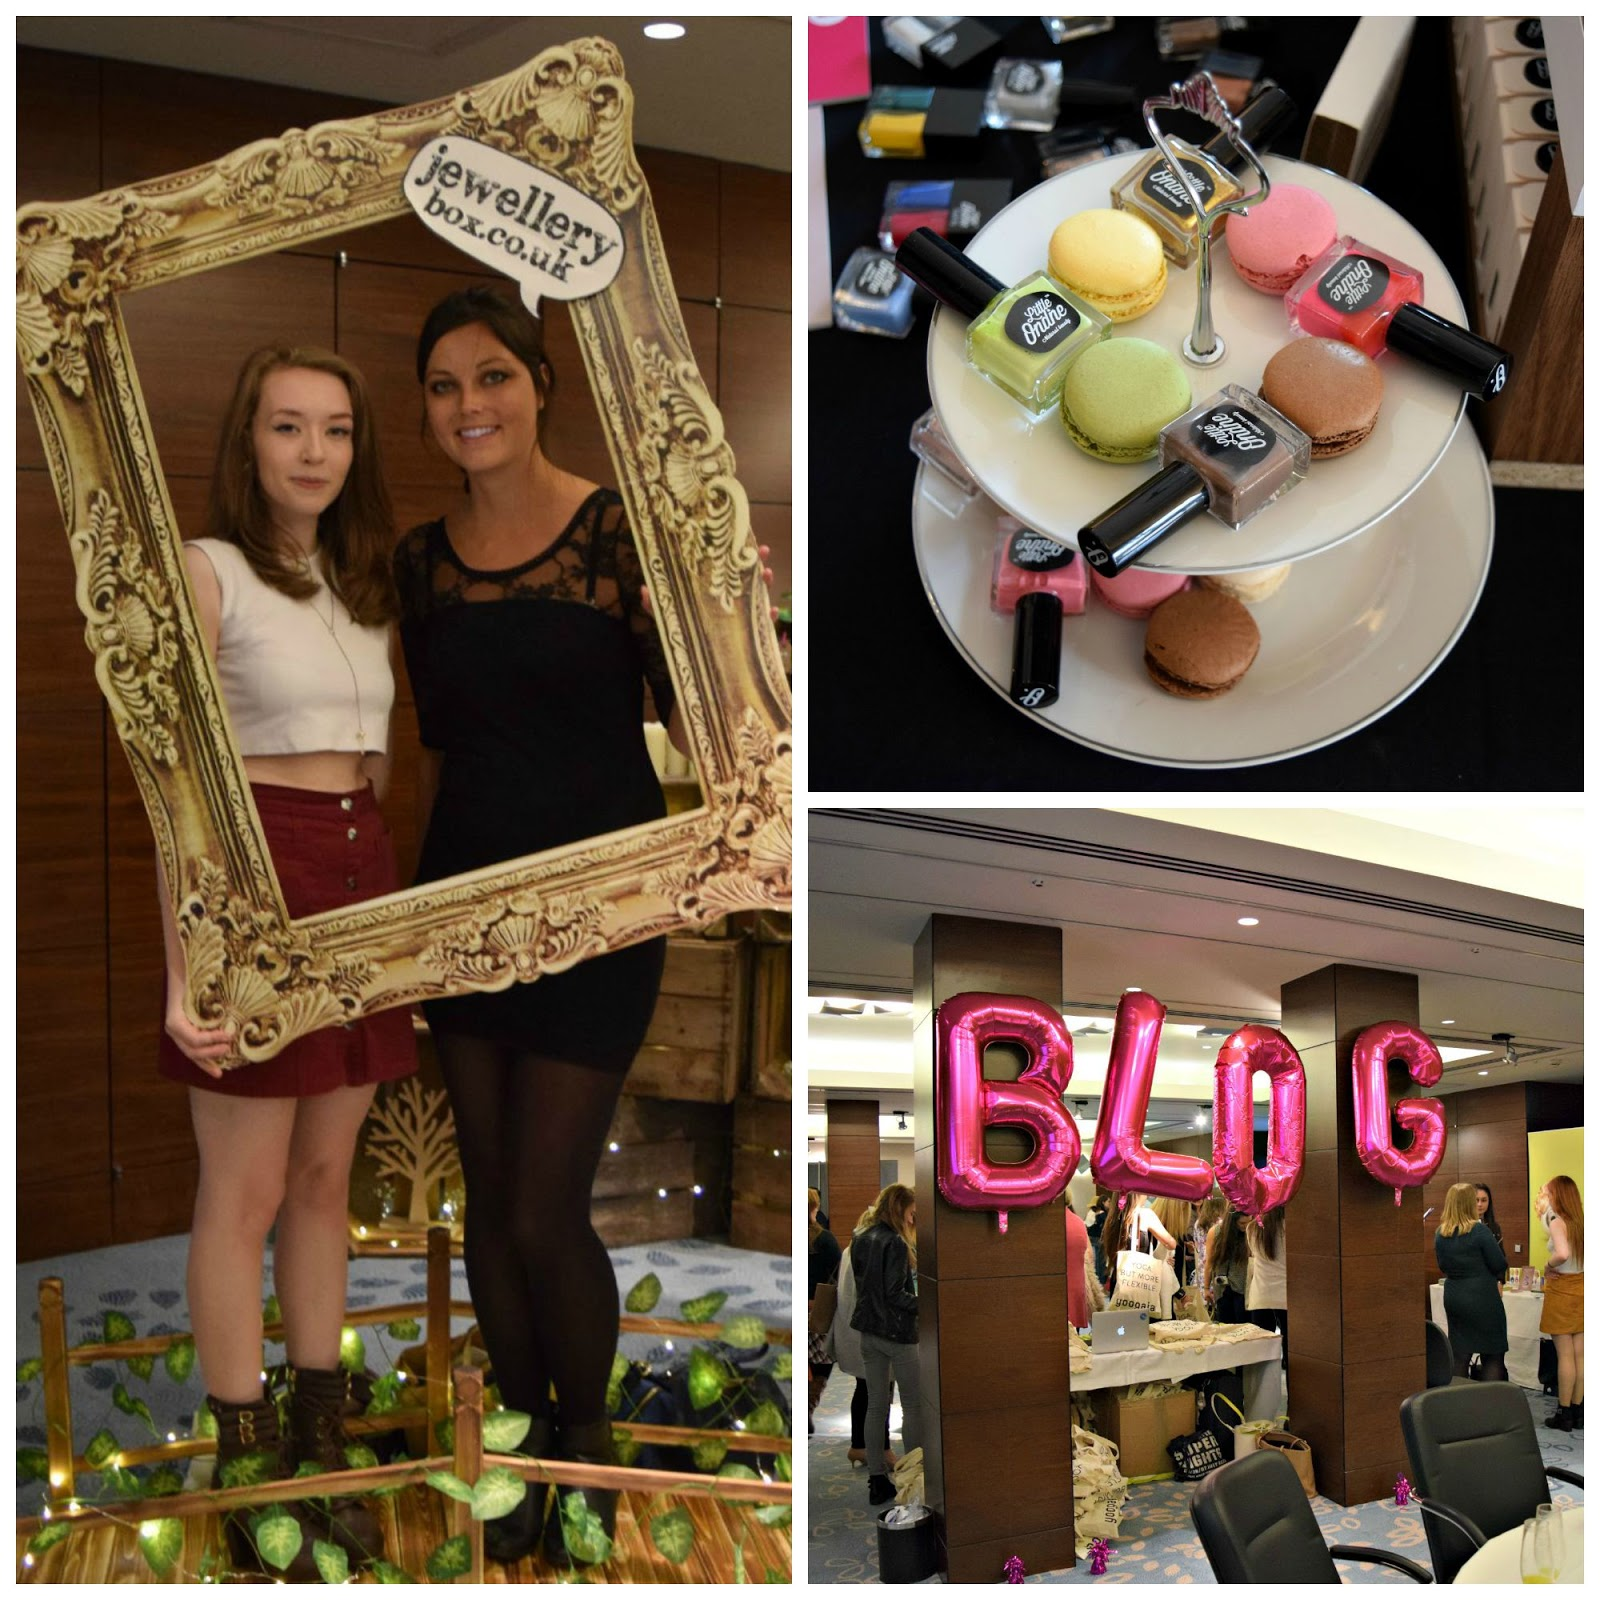 Blogging events - are they worth it